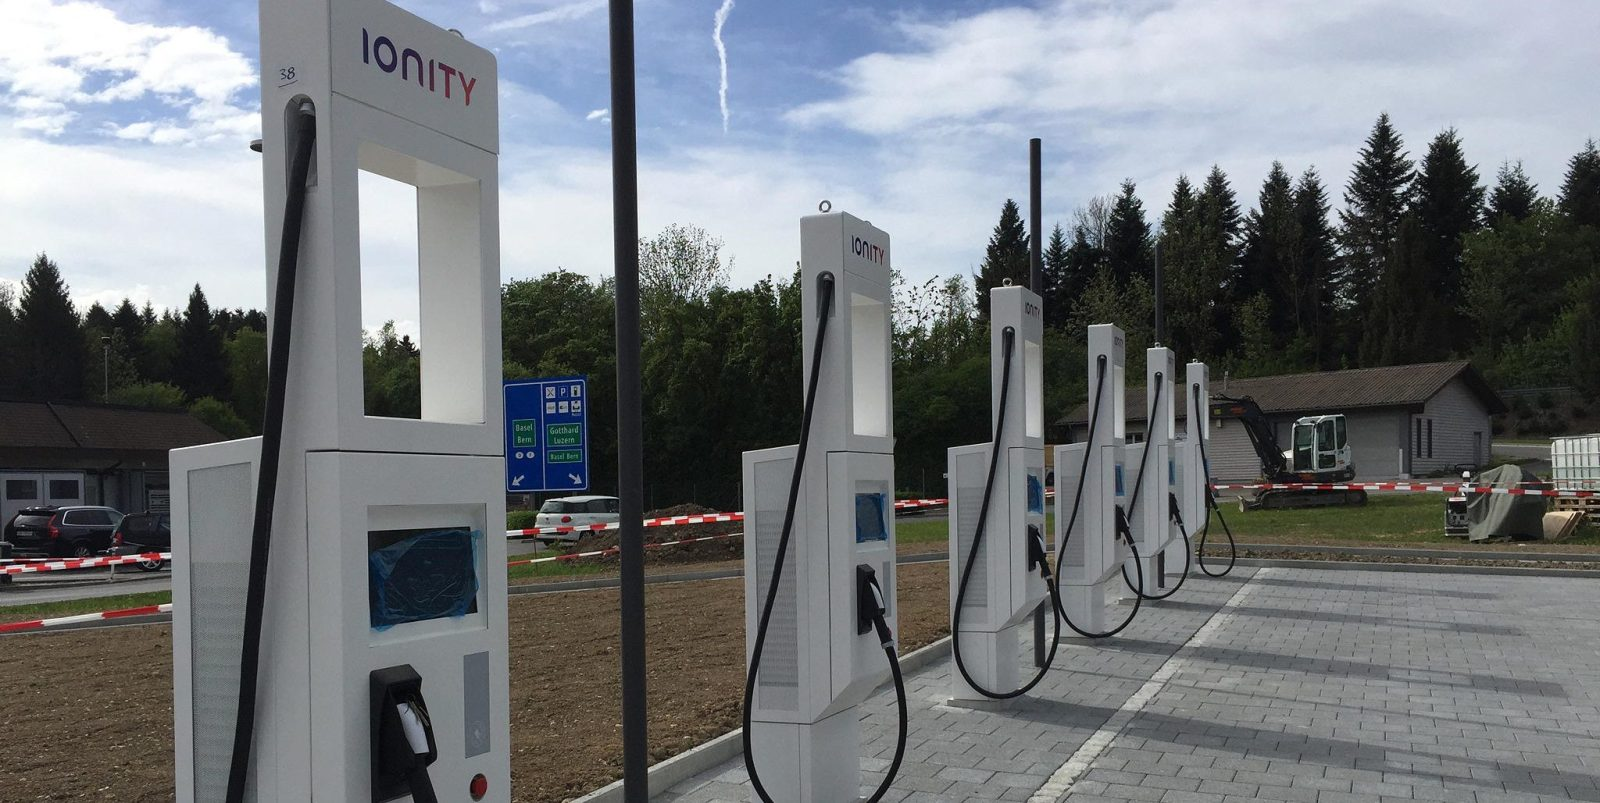 New Electric Vehicle Charging Station Unveiled With Record Capacity Of Up To 475 Kw